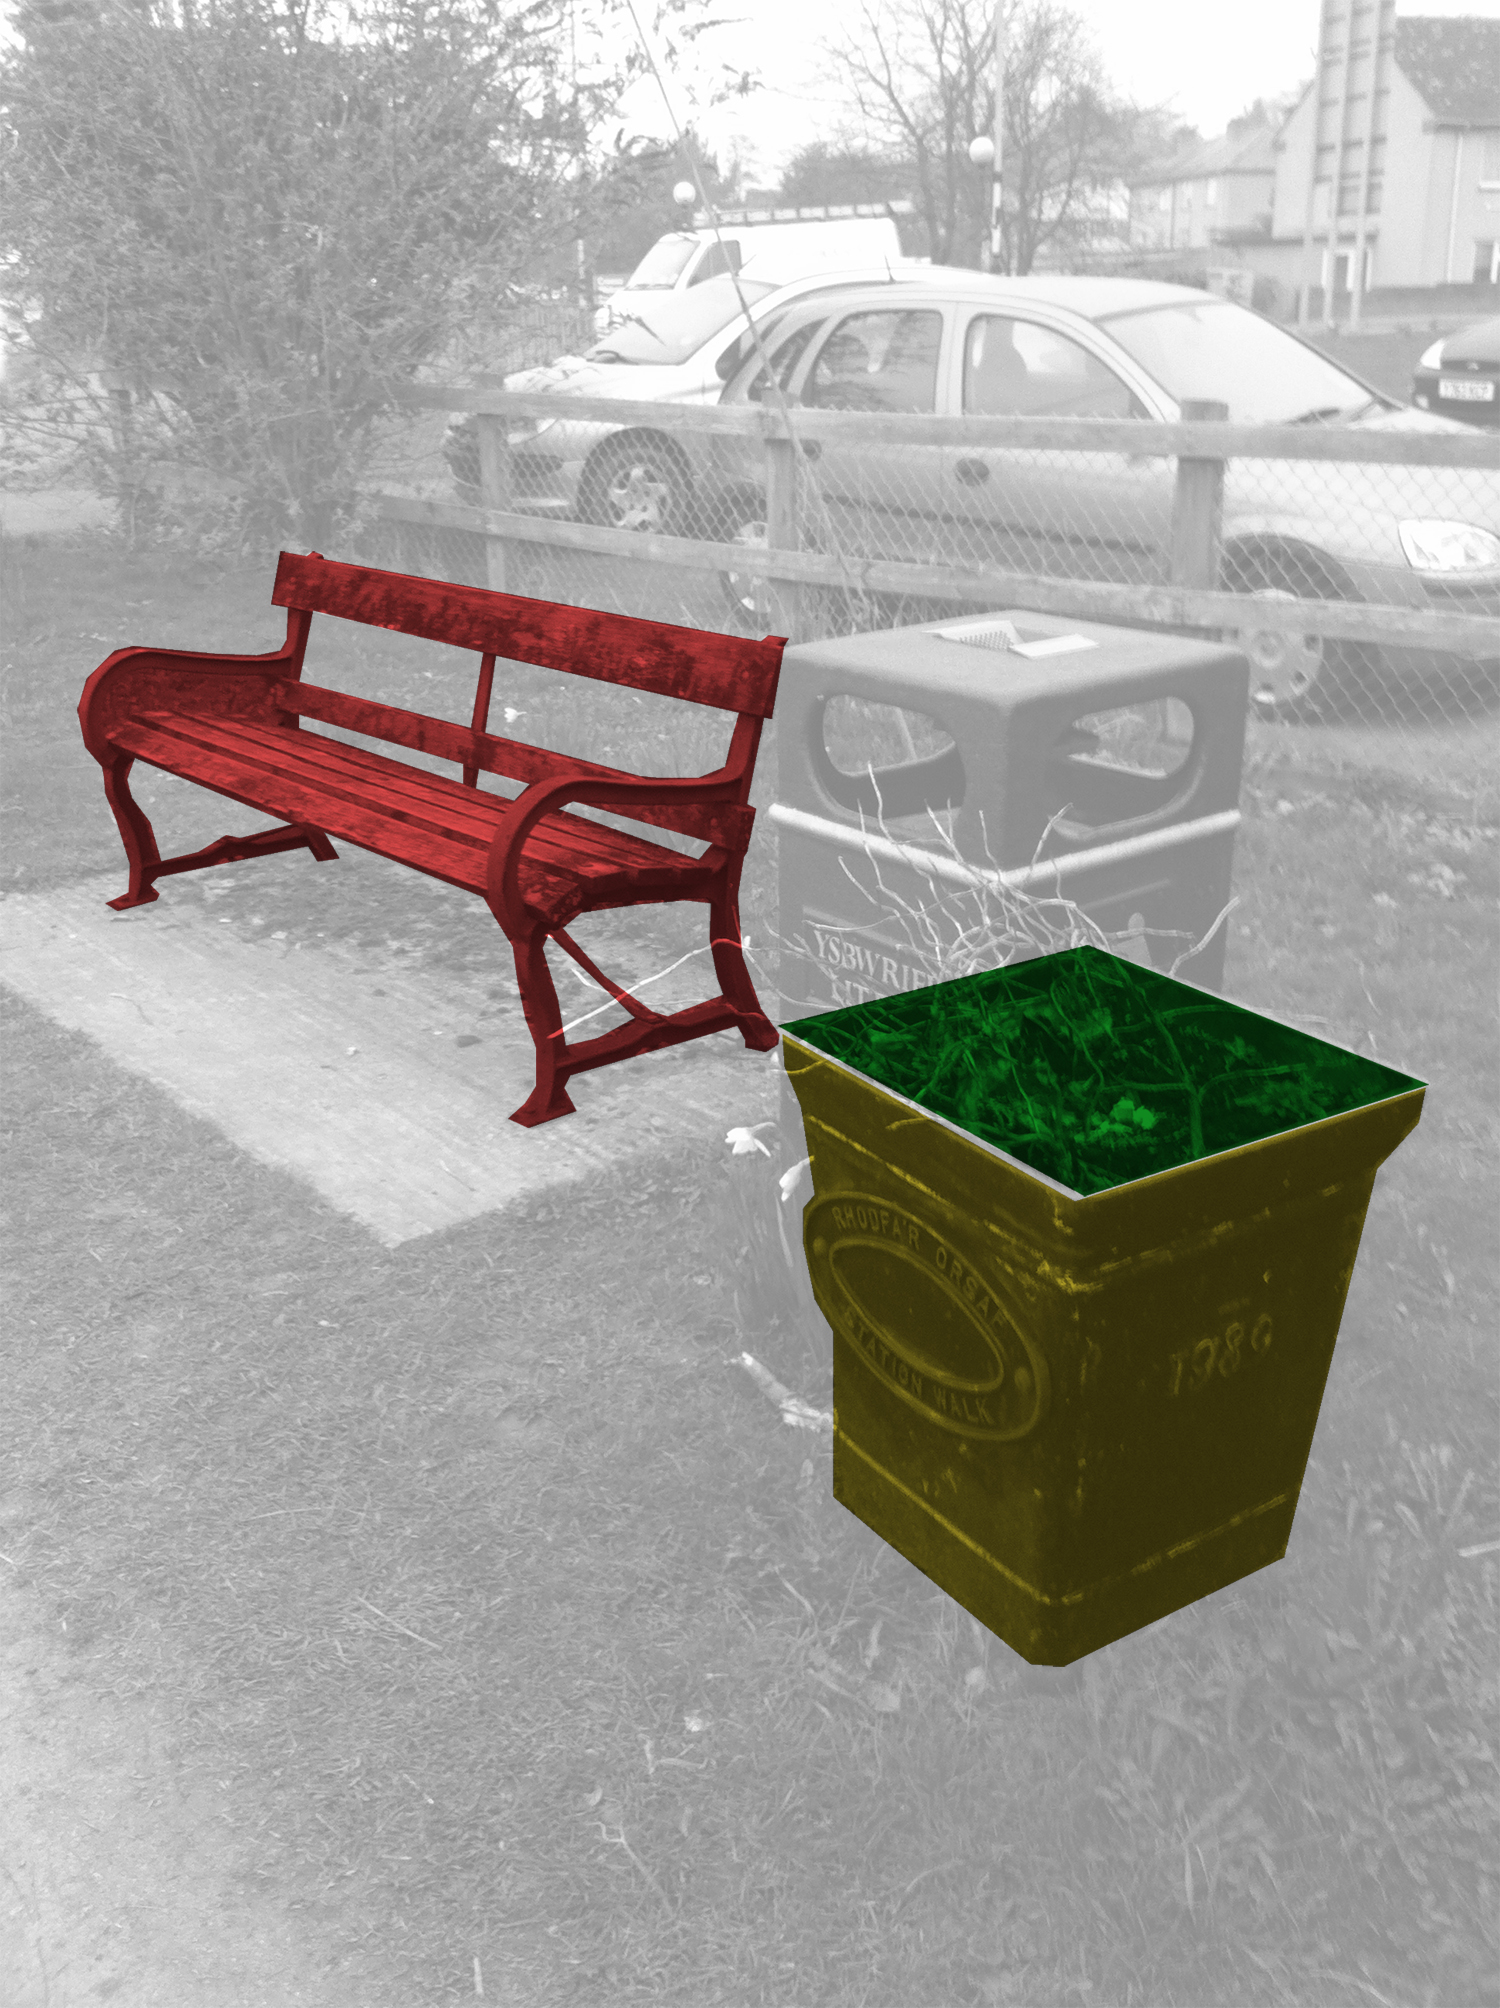 Identify different elements of street furniture- bench, planter, signs, bins...